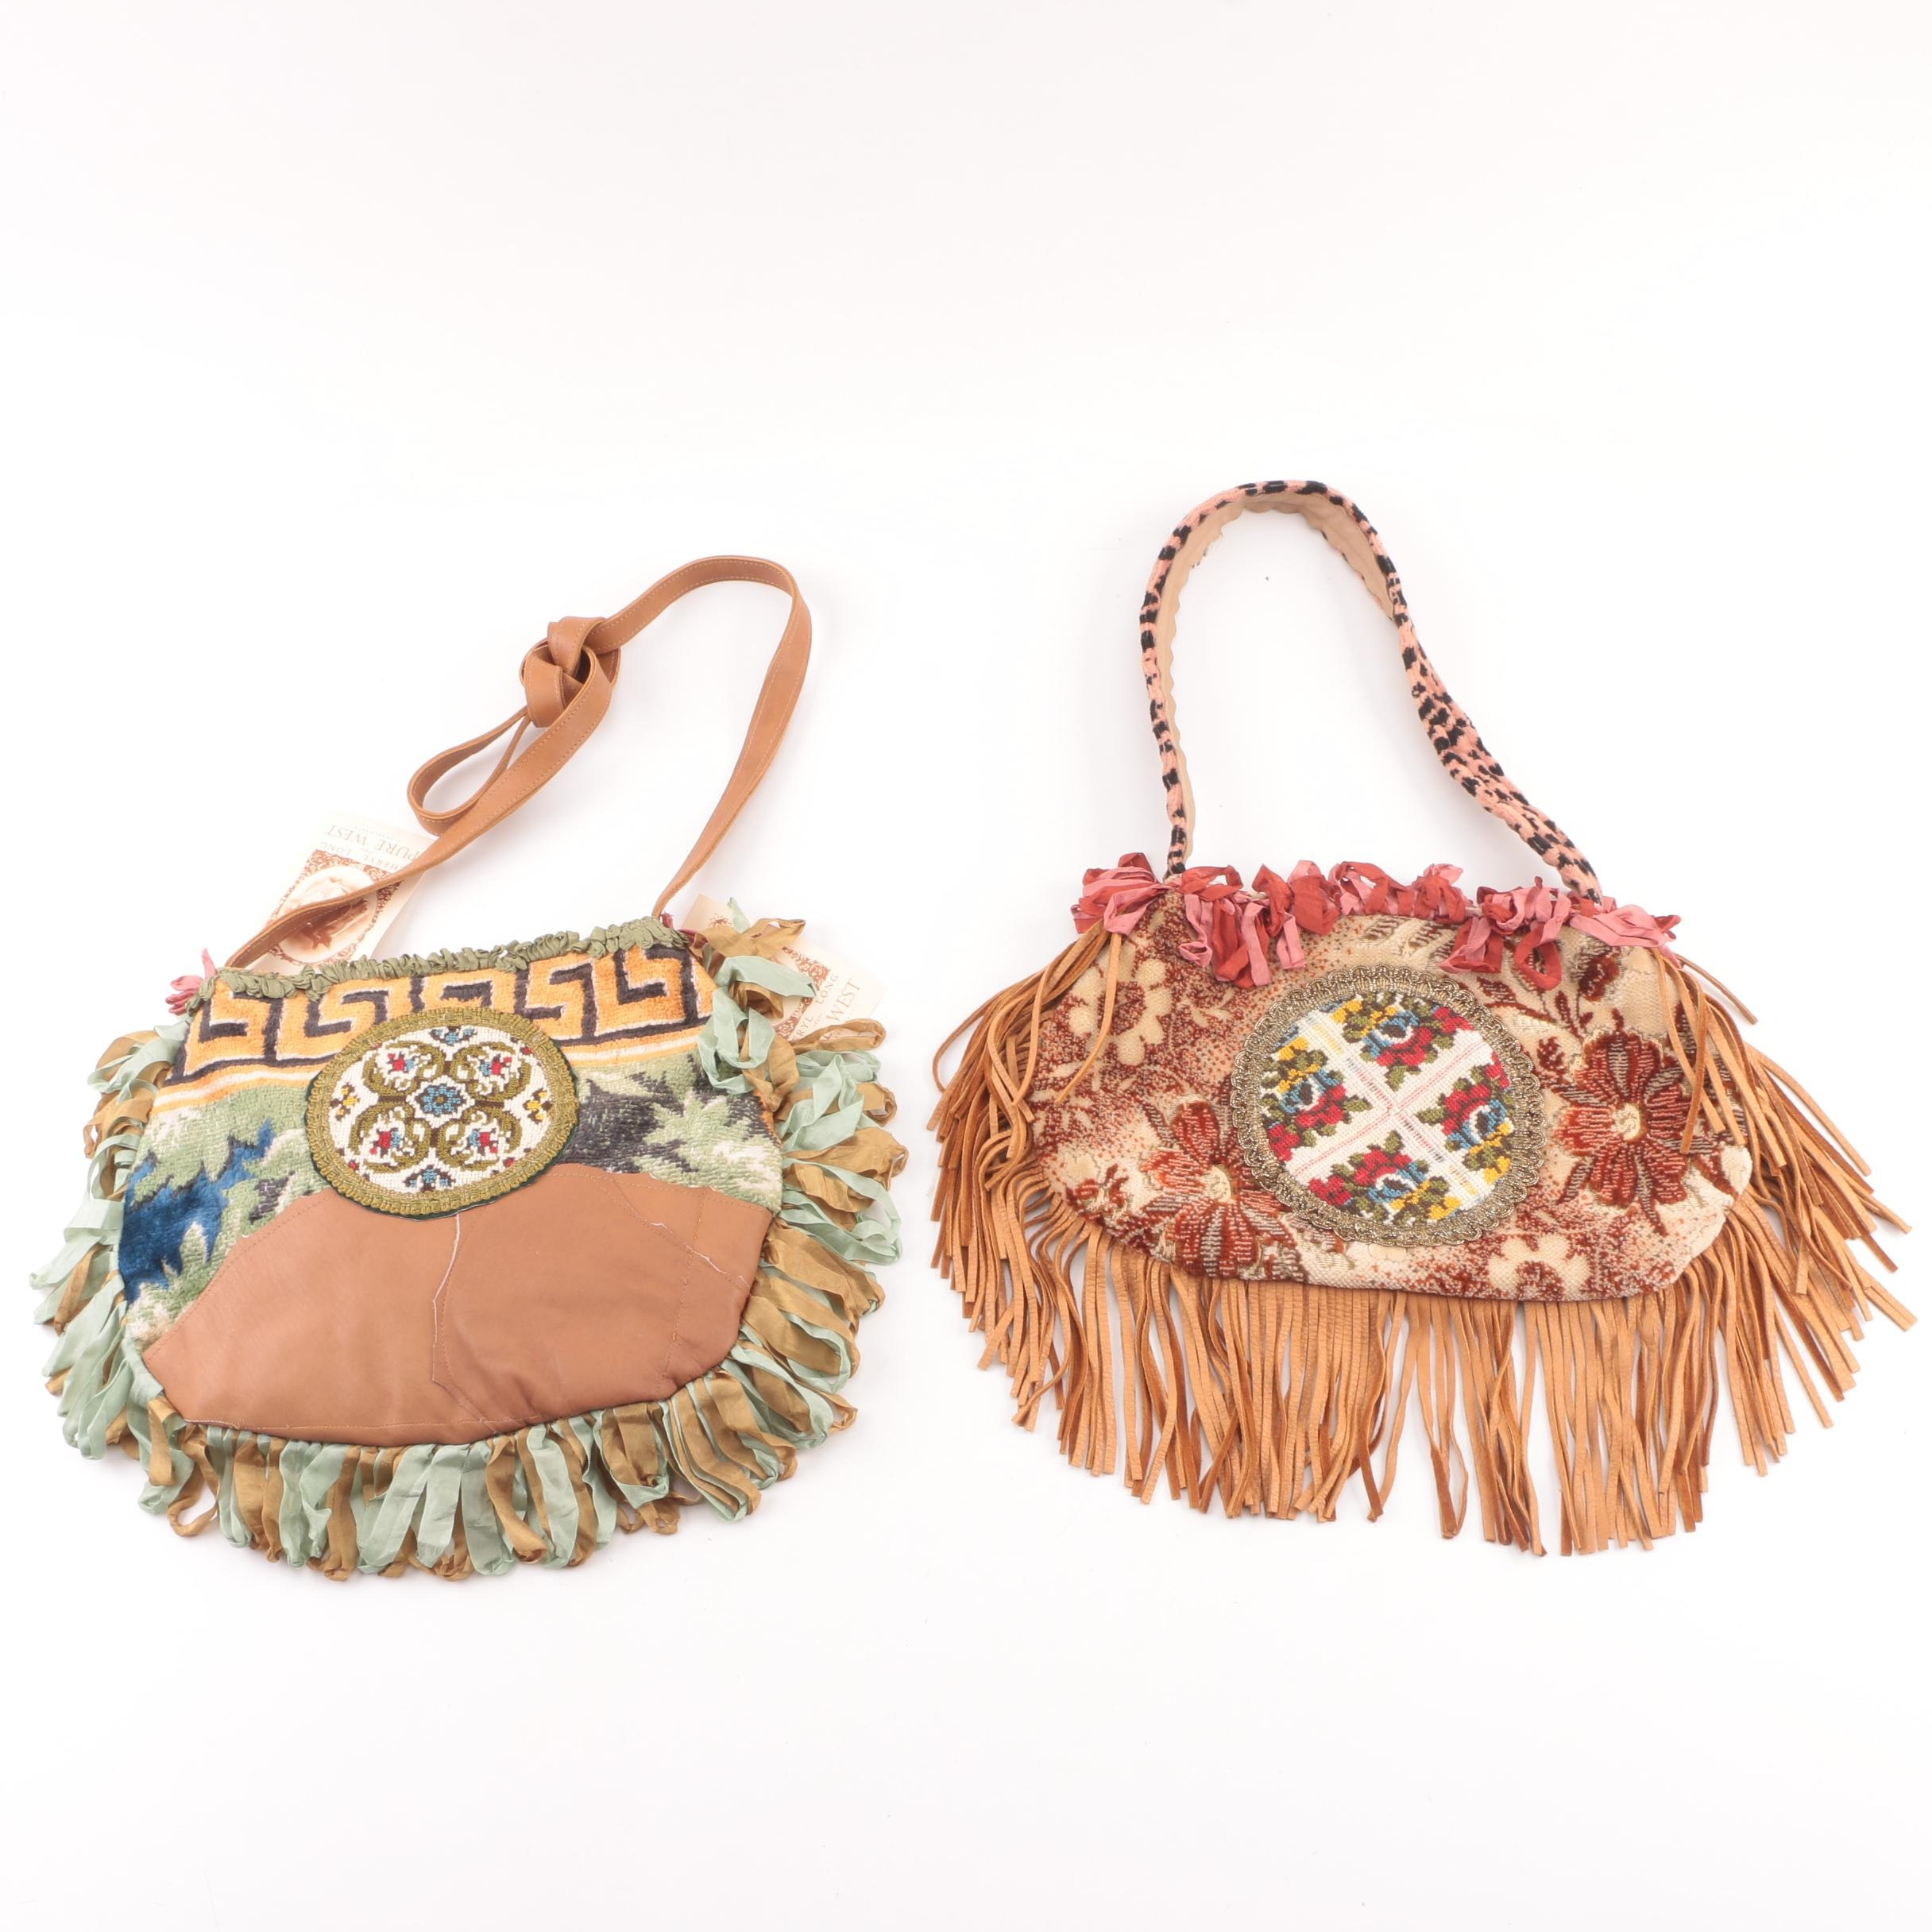 Pure West by Cheryl Long Mixed Media Handbags